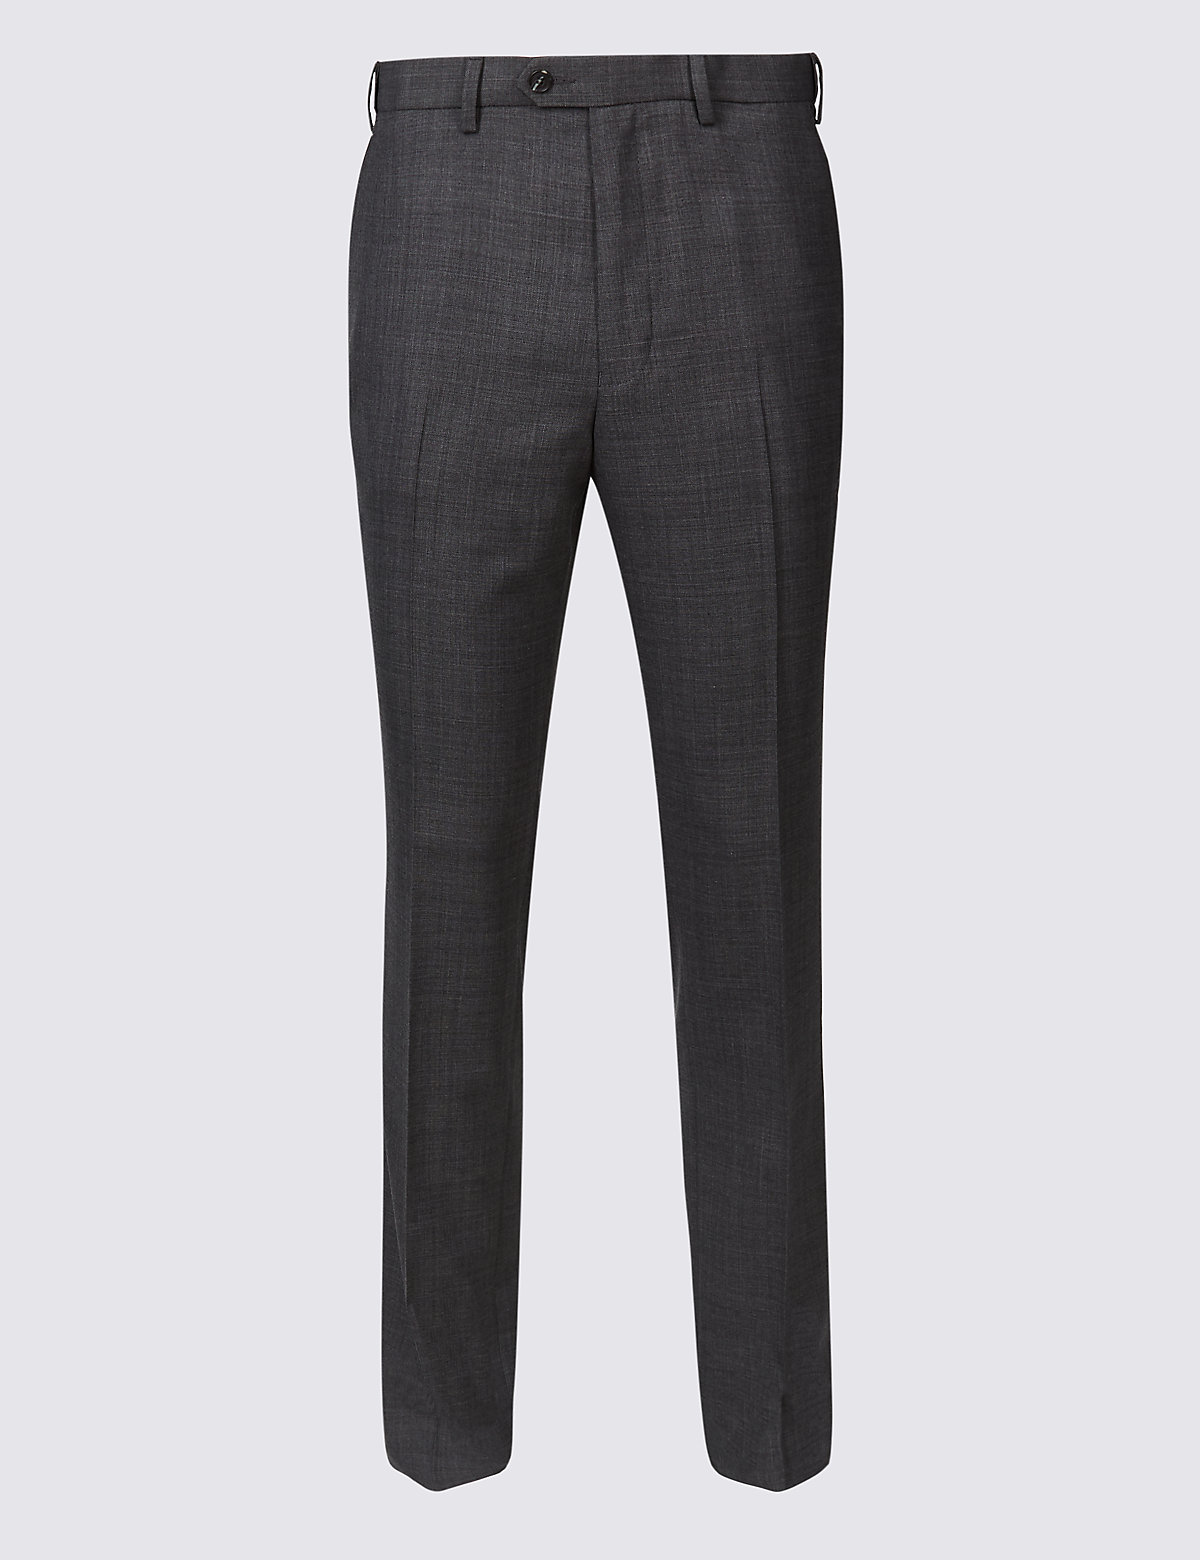 Marks & Spencer Grey Slim Fit Wool Blend Flat Front Trousers